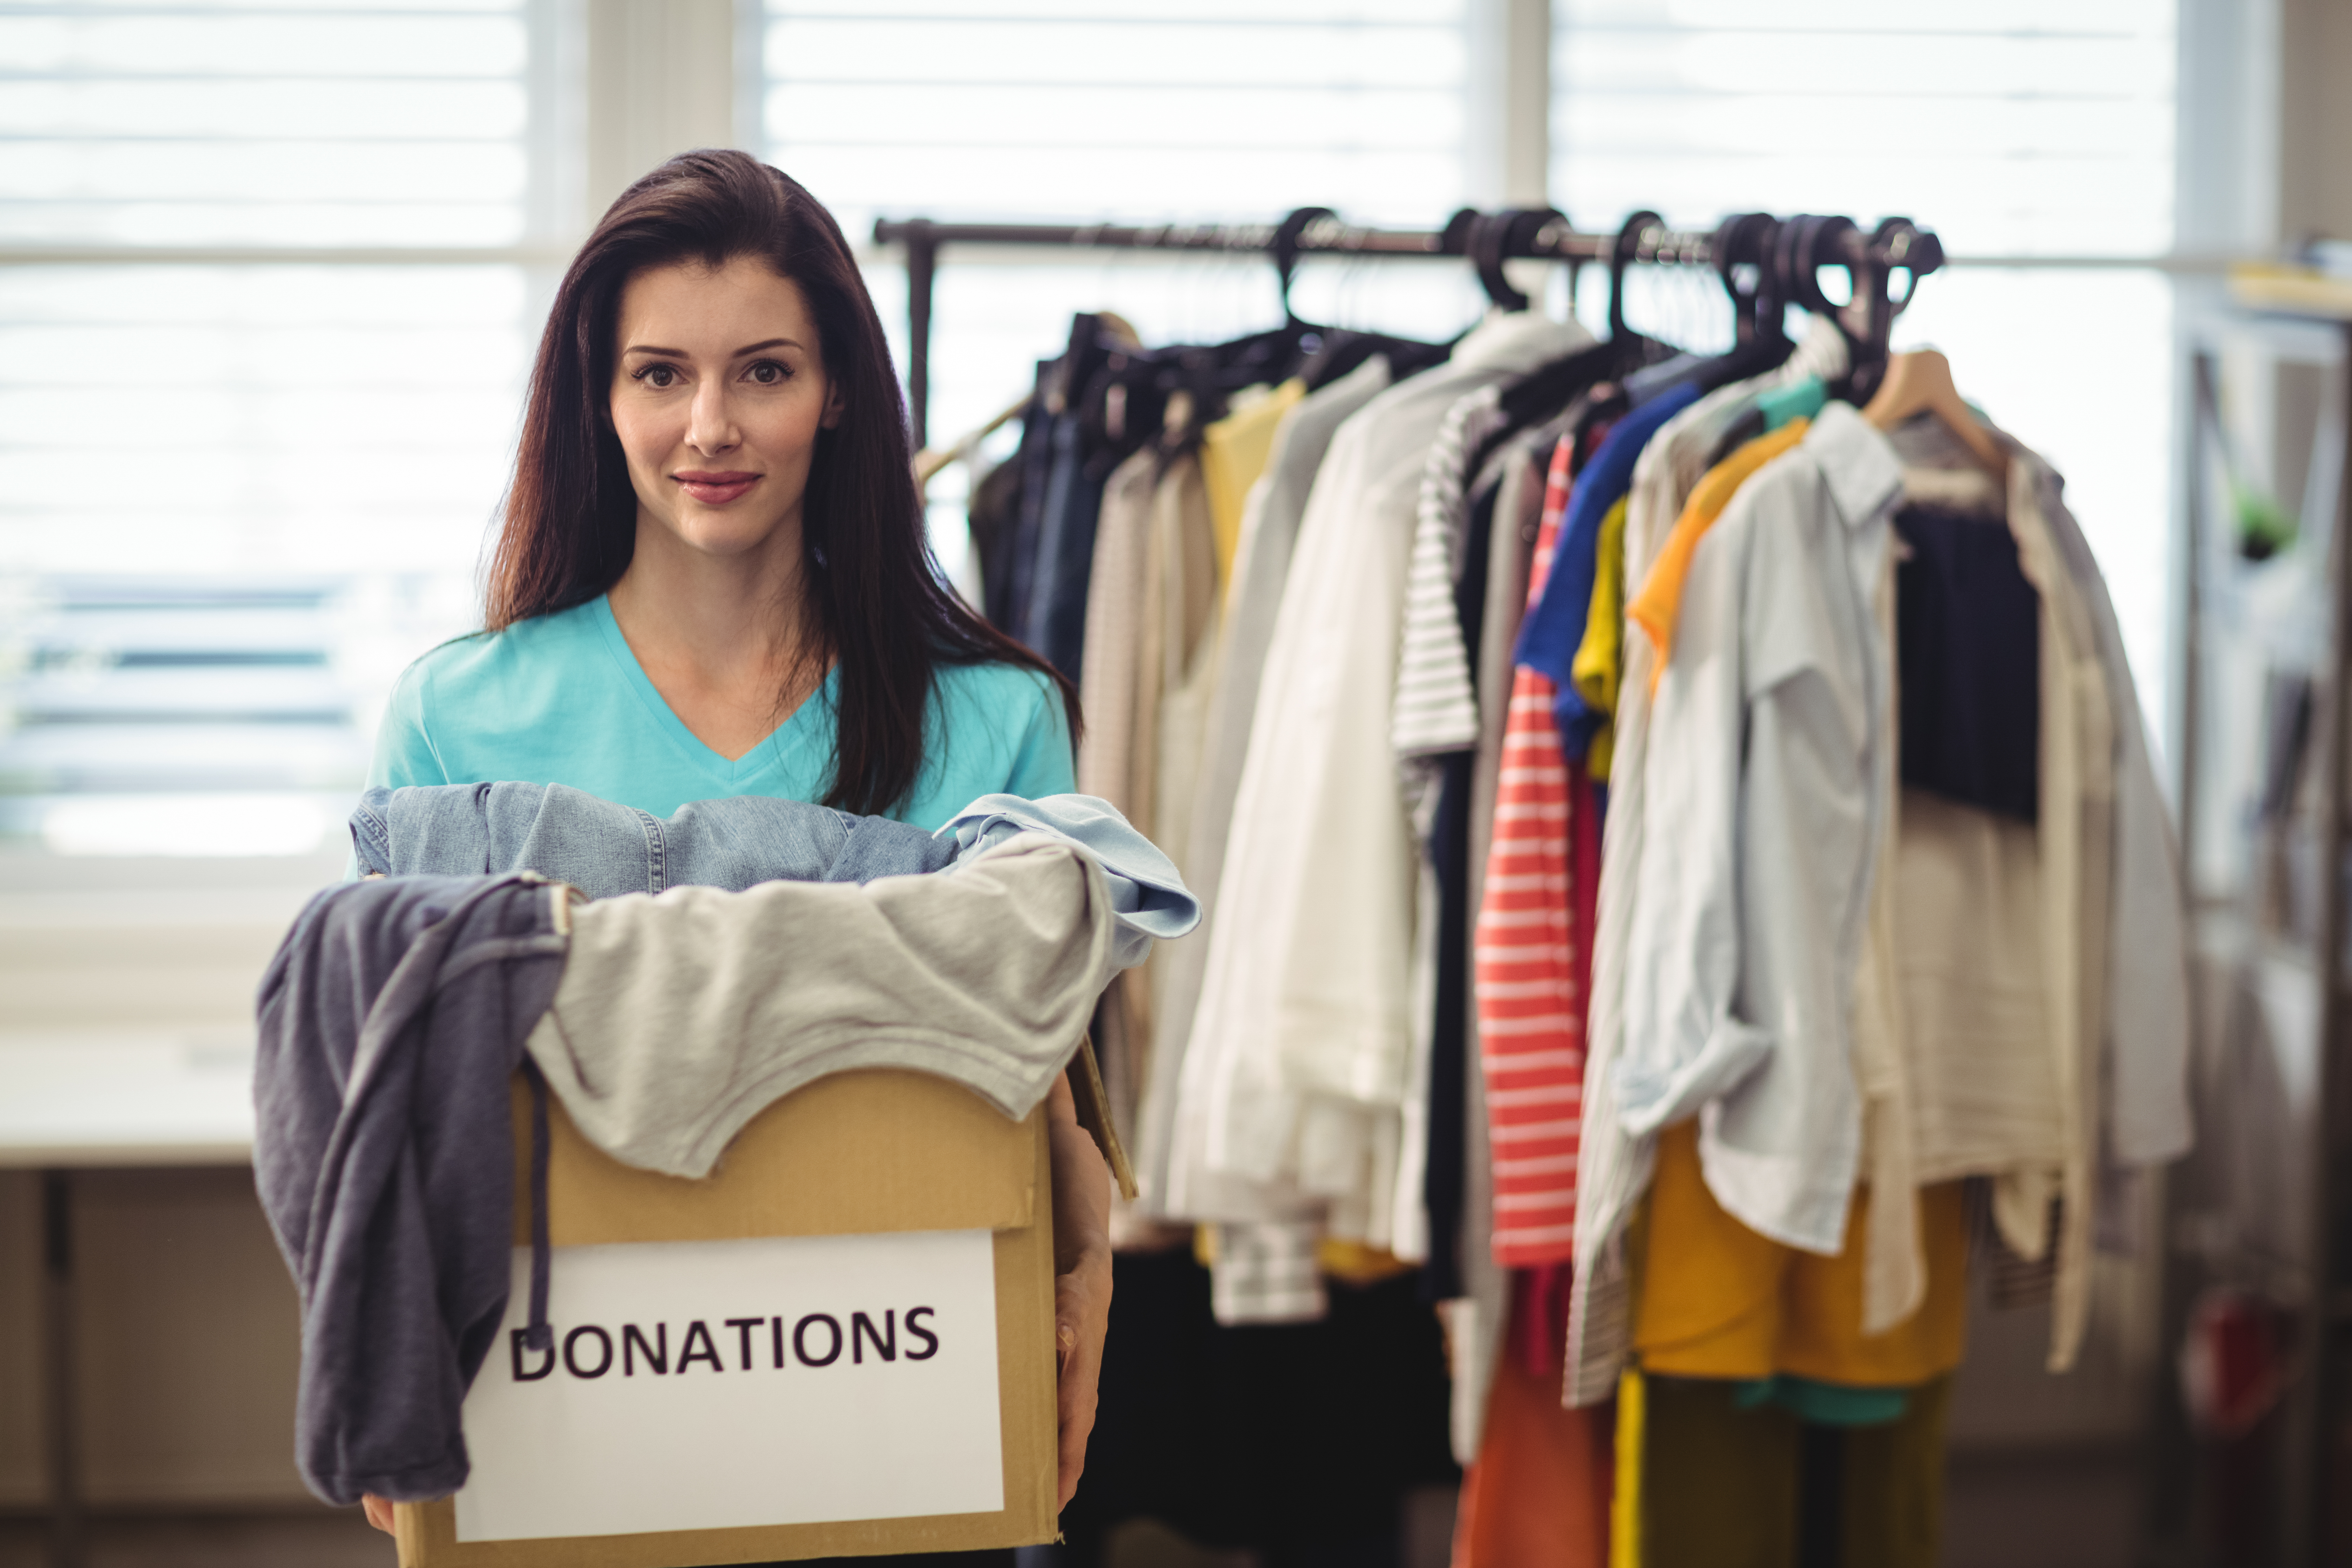 Female volunteer holding clothes in donation box at workshop